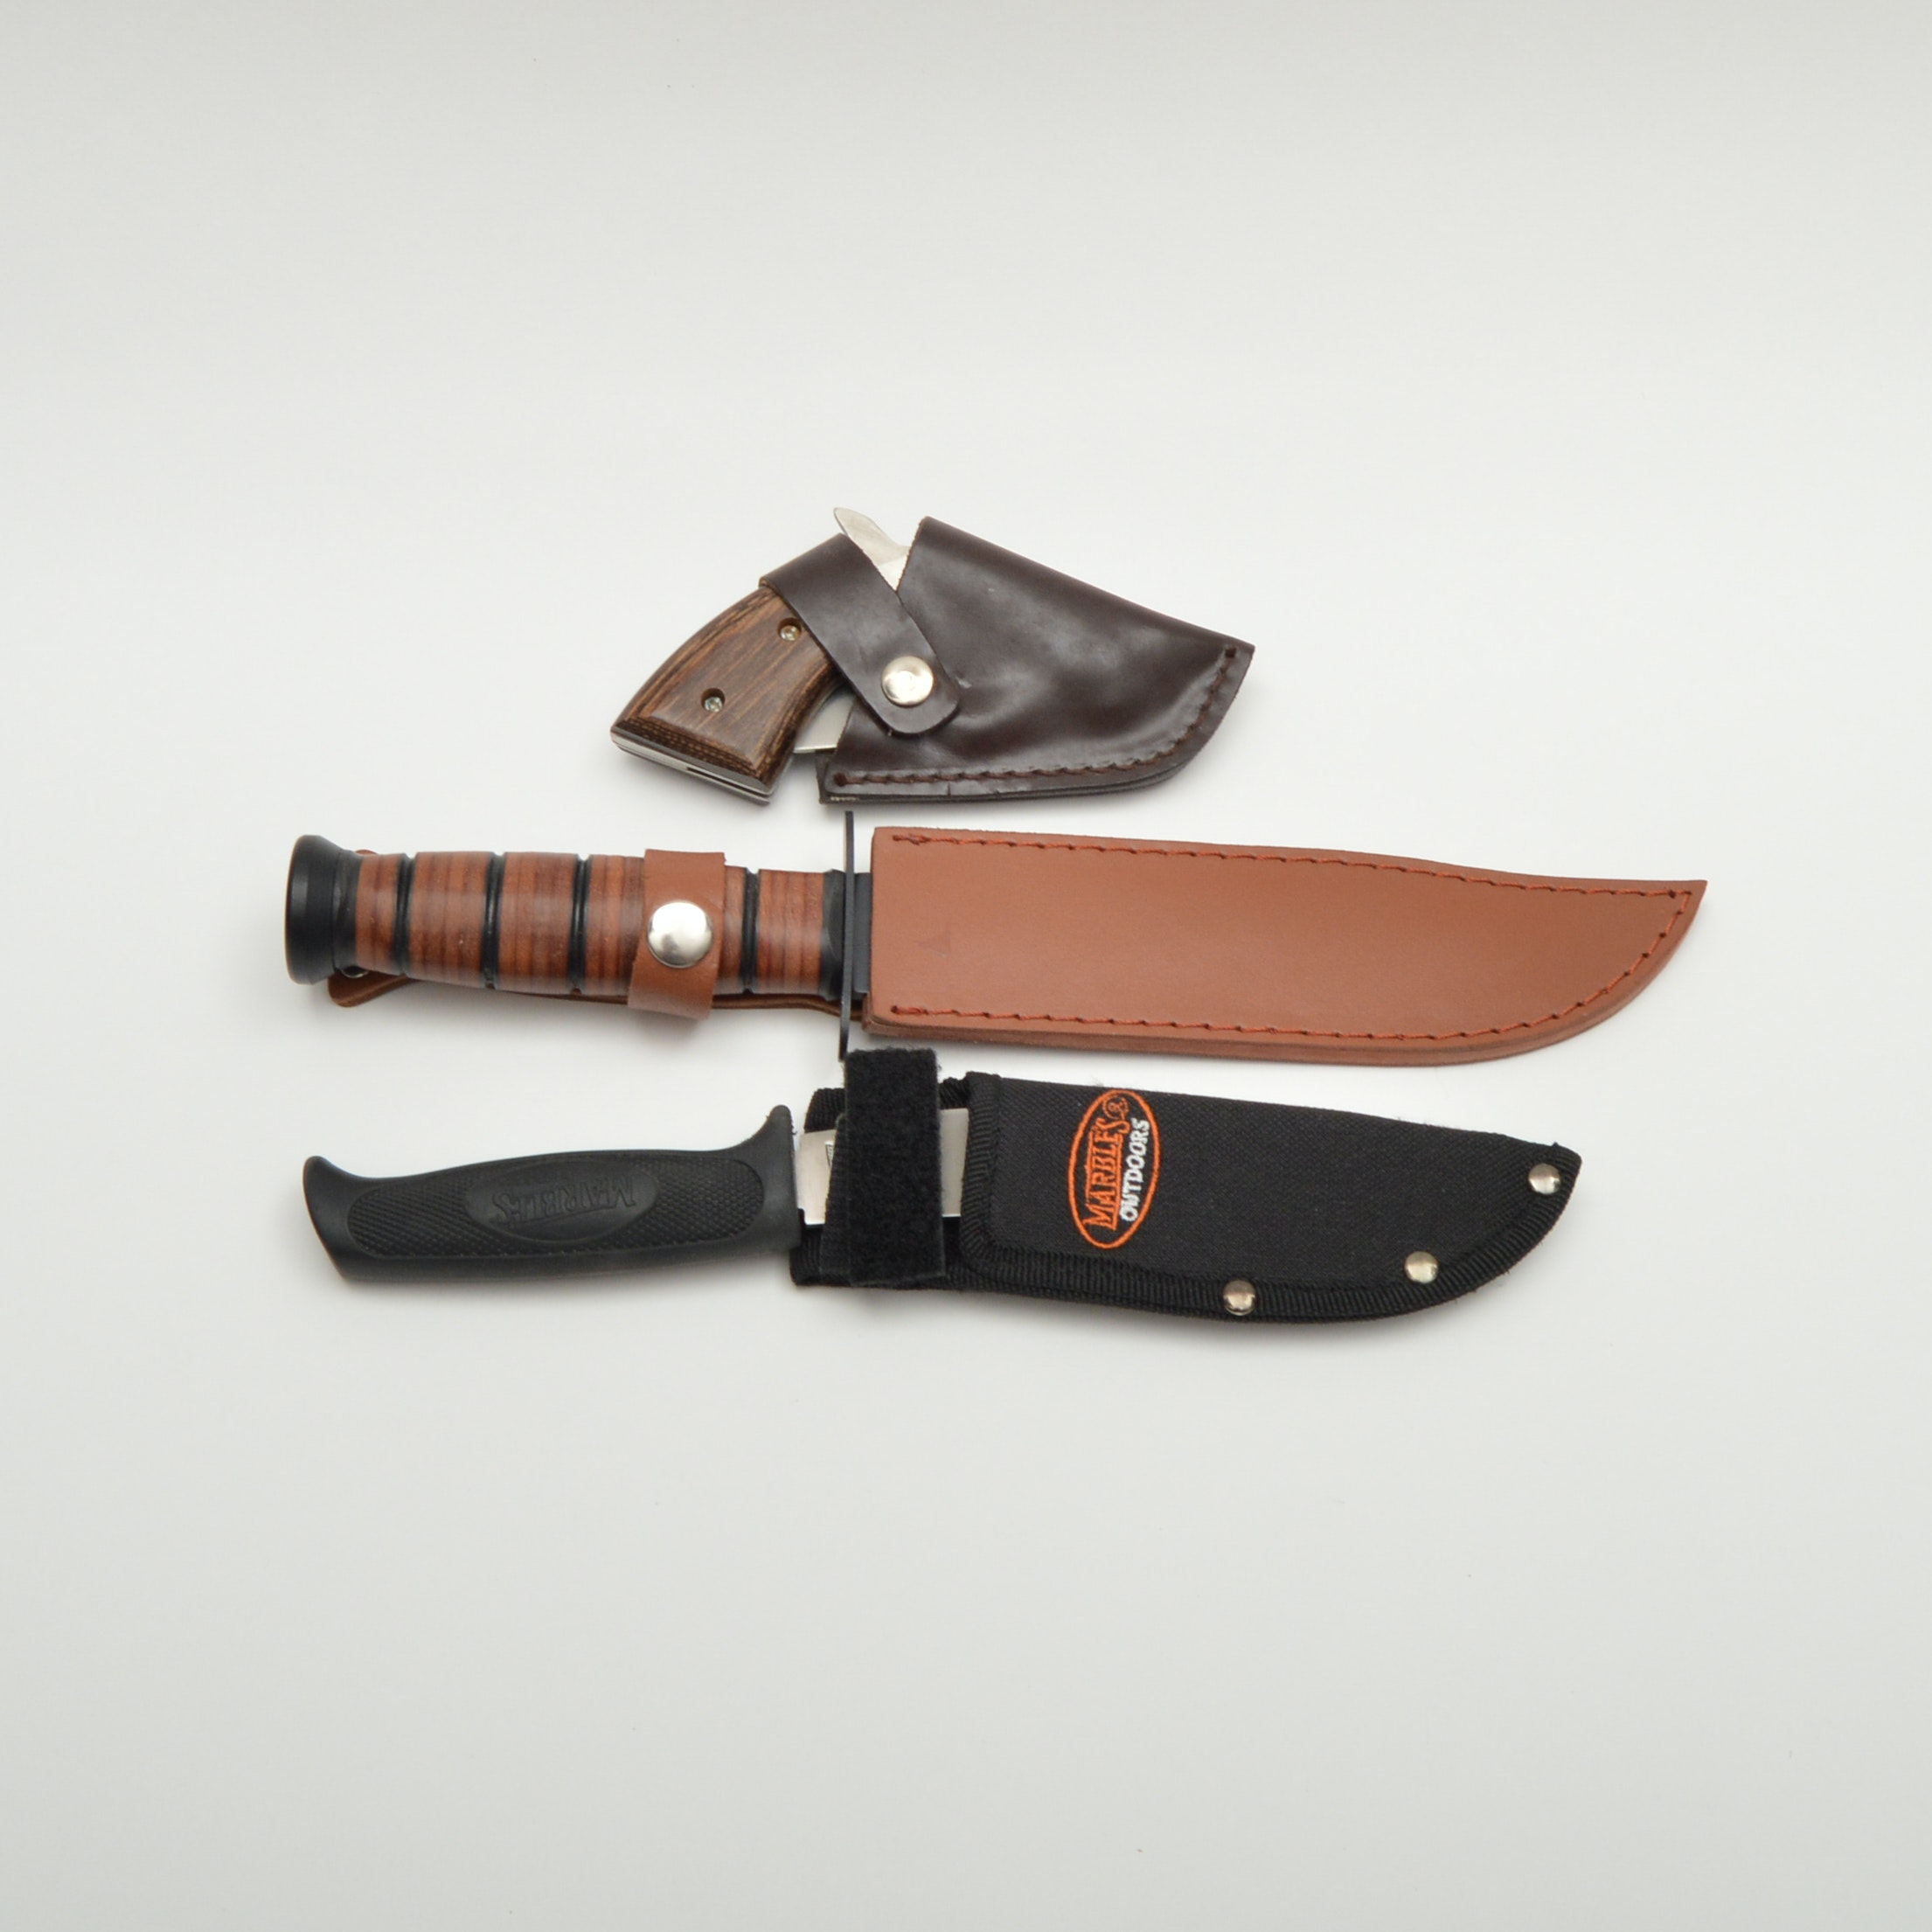 Knife Trio Including Marbles Outdoors